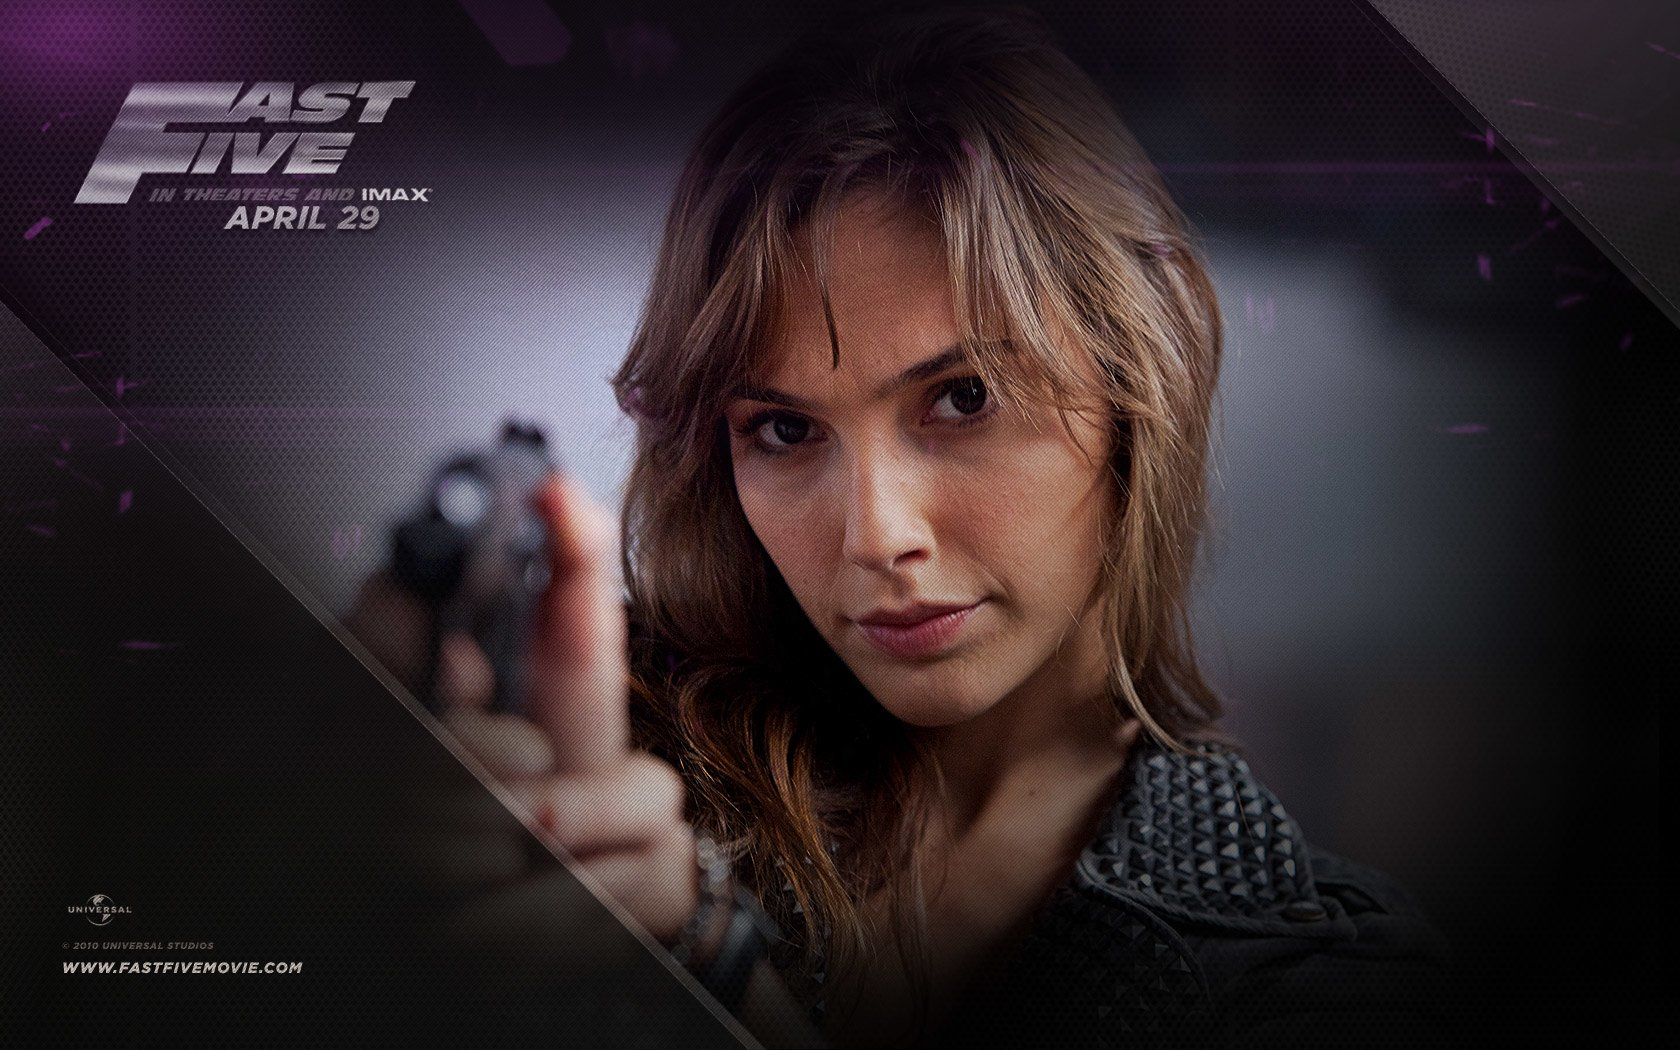 16 Fast Five Hd Wallpapers Background Images Wallpaper Abyss